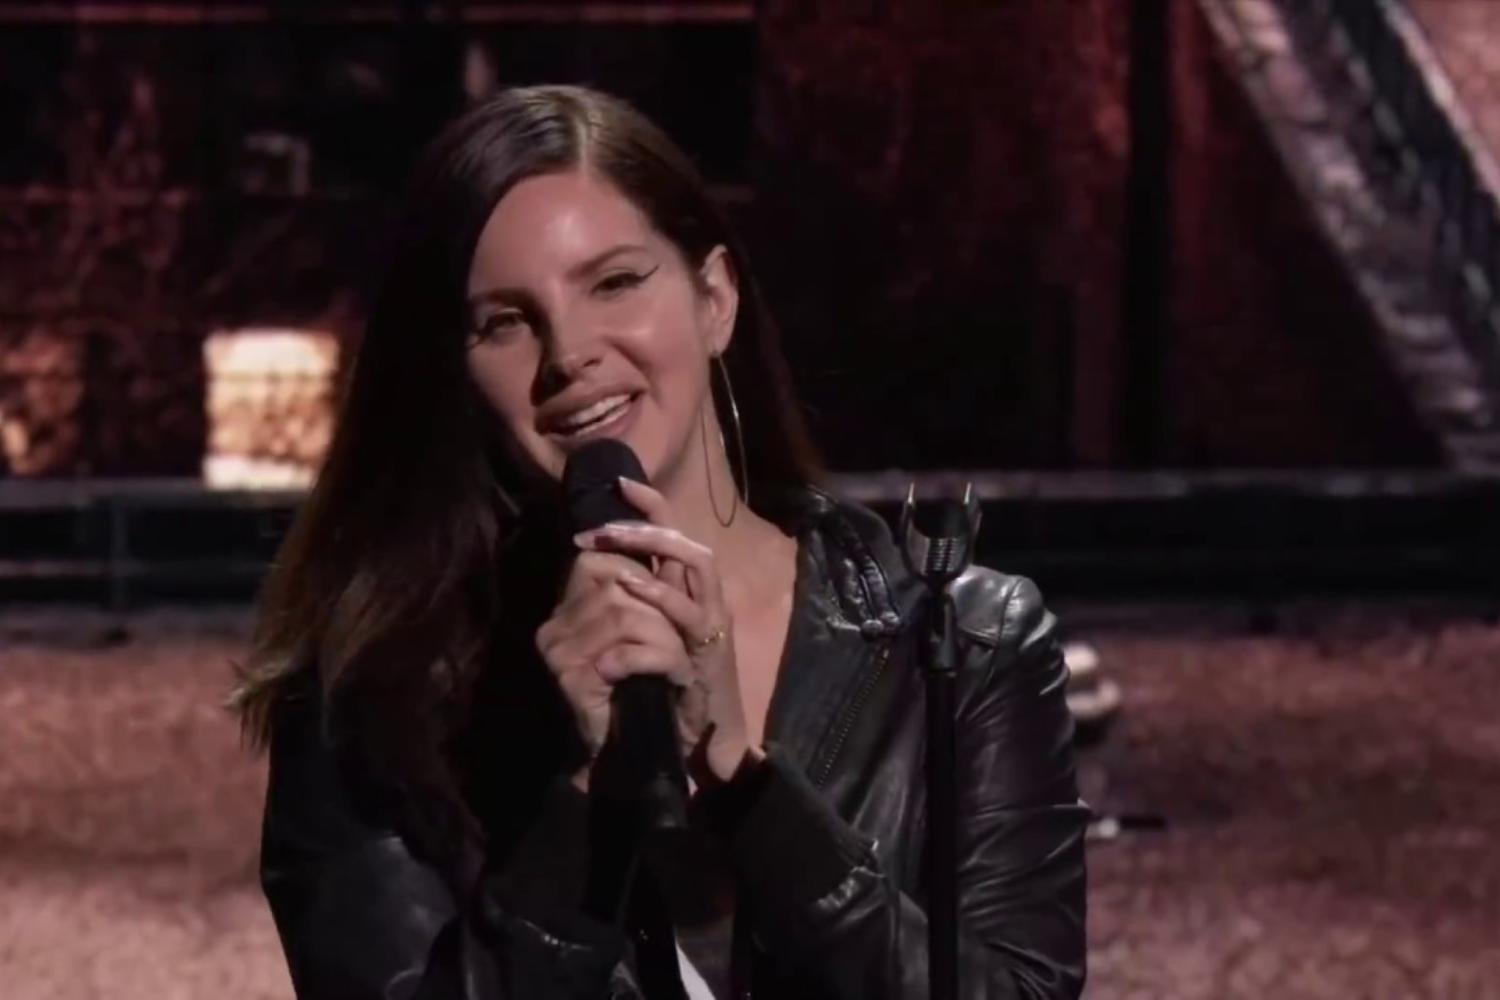 Lana Del Rey debuts new song 'How To Disappear' with Jack Antonoff